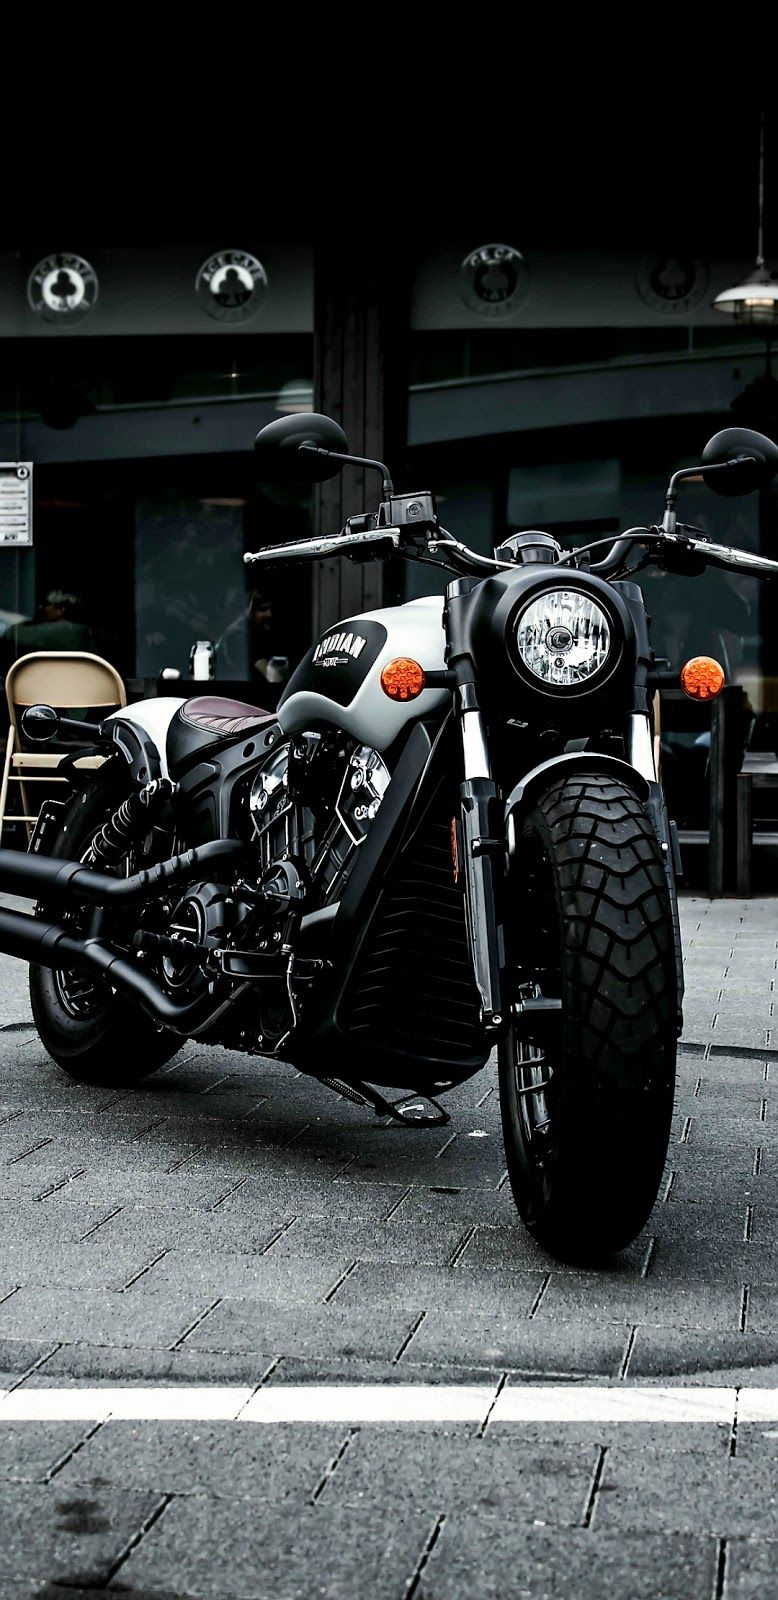 Chopper Bike Mobile Wallpaper Indian Motorcycle Motorcycle Wallpaper Motorcycle Pictures